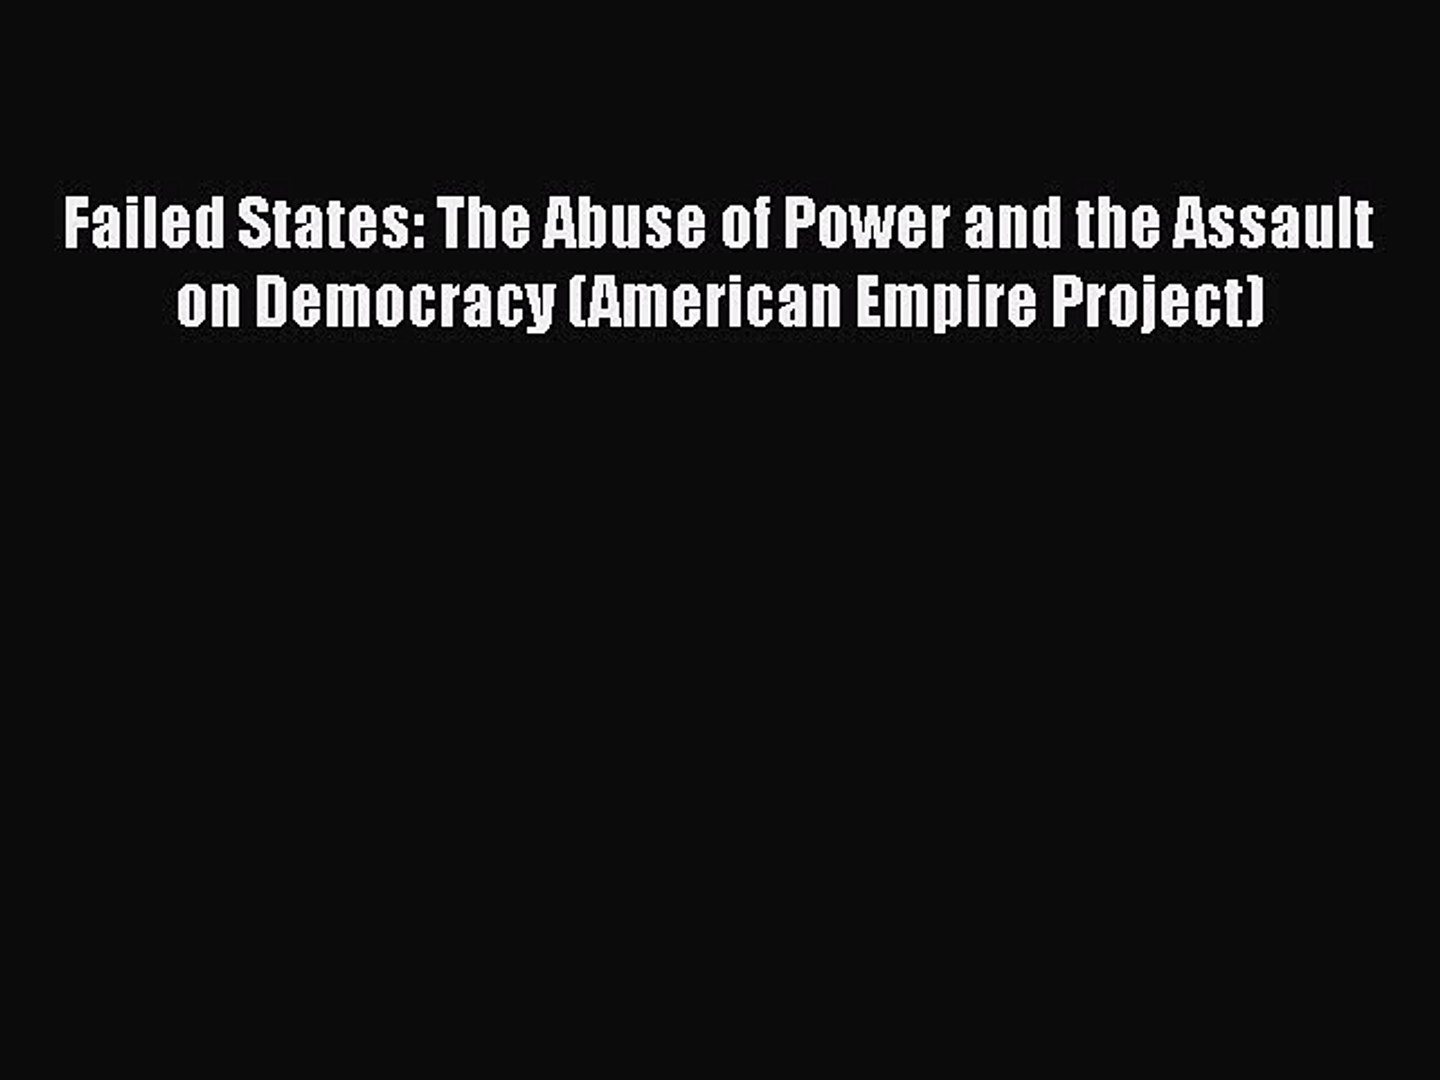 Read Failed States: The Abuse of Power and the Assault on Democracy (American Empire Project)